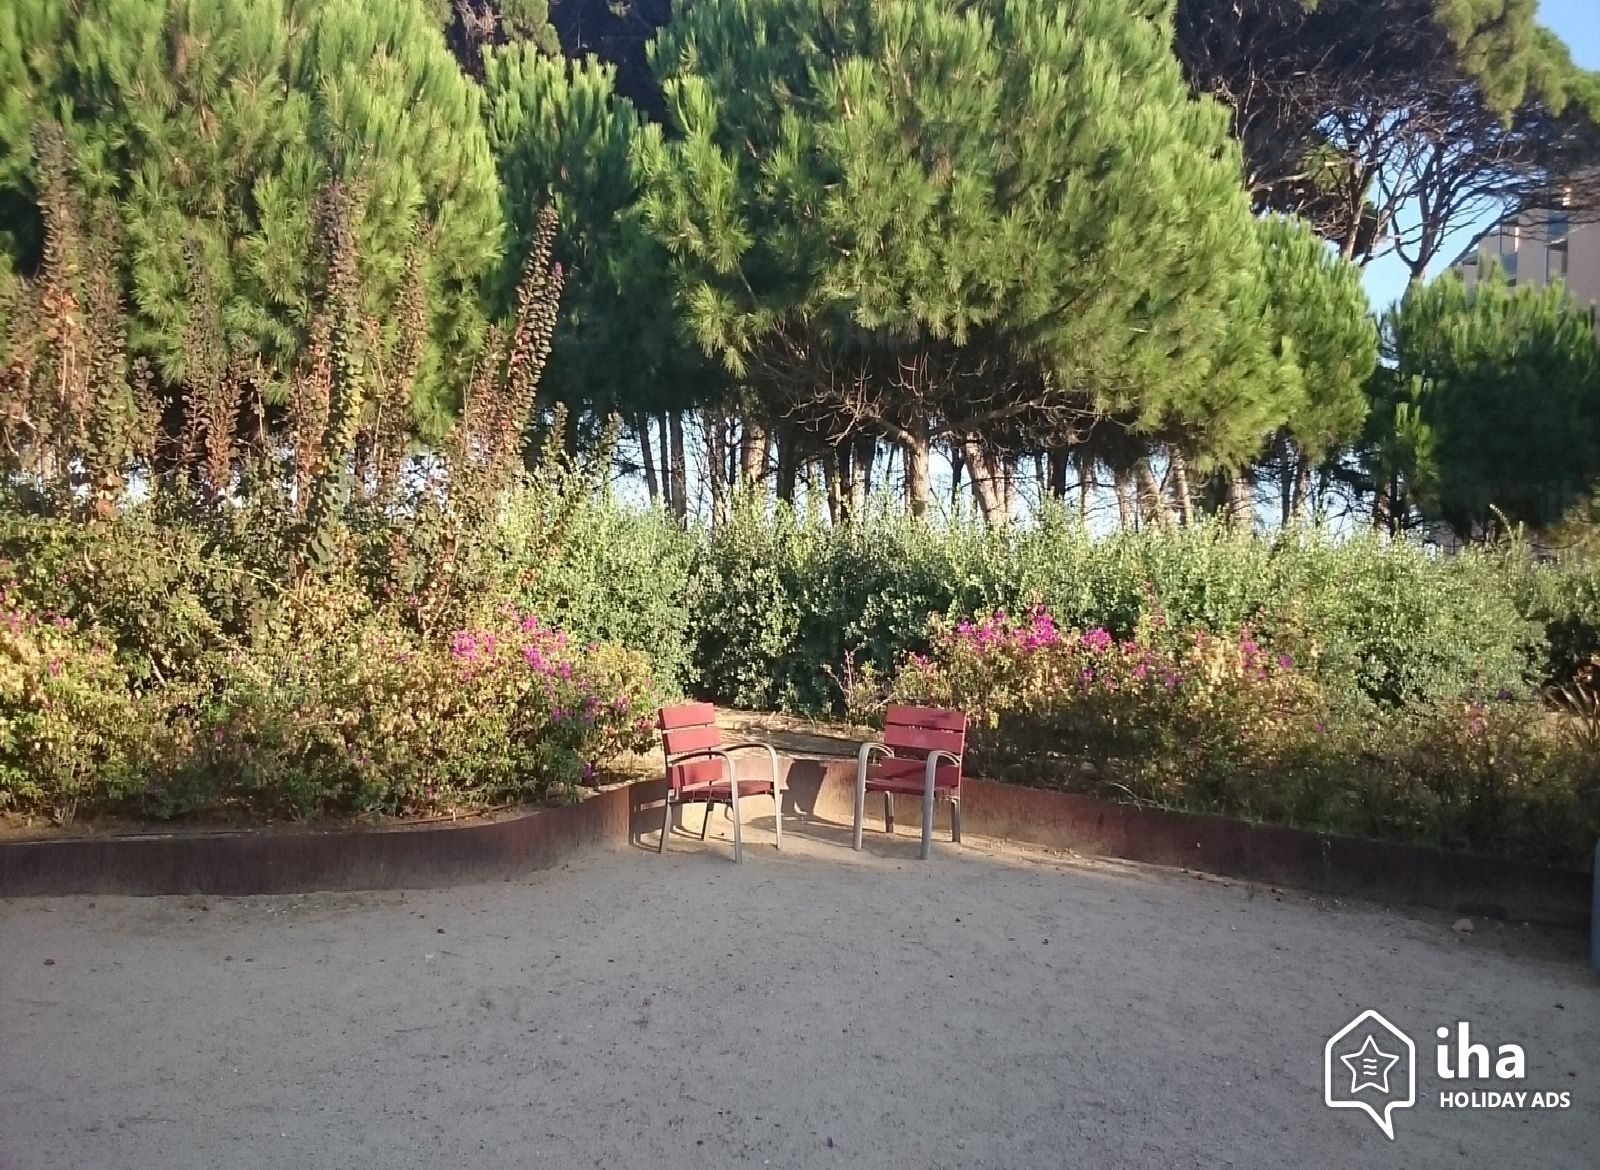 Apartment-Flat For Rent In La Pineda Iha 69613 with Garden On Flat Apartment